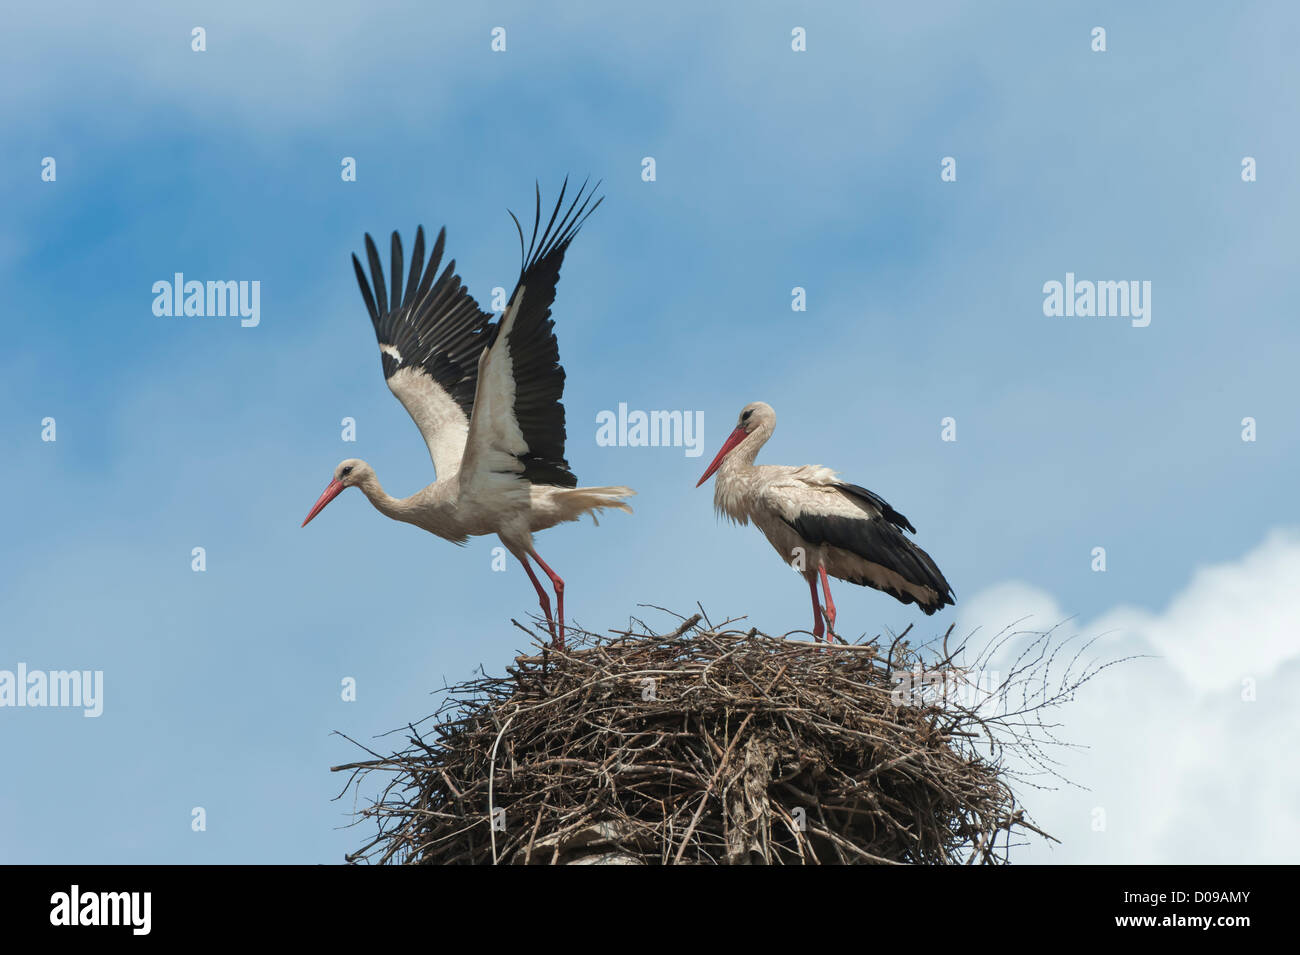 Couple of White storks (Ciconia ciconia) on the nest, one in flight, Izmir Province, Aegean region, Turkey Stock Photo